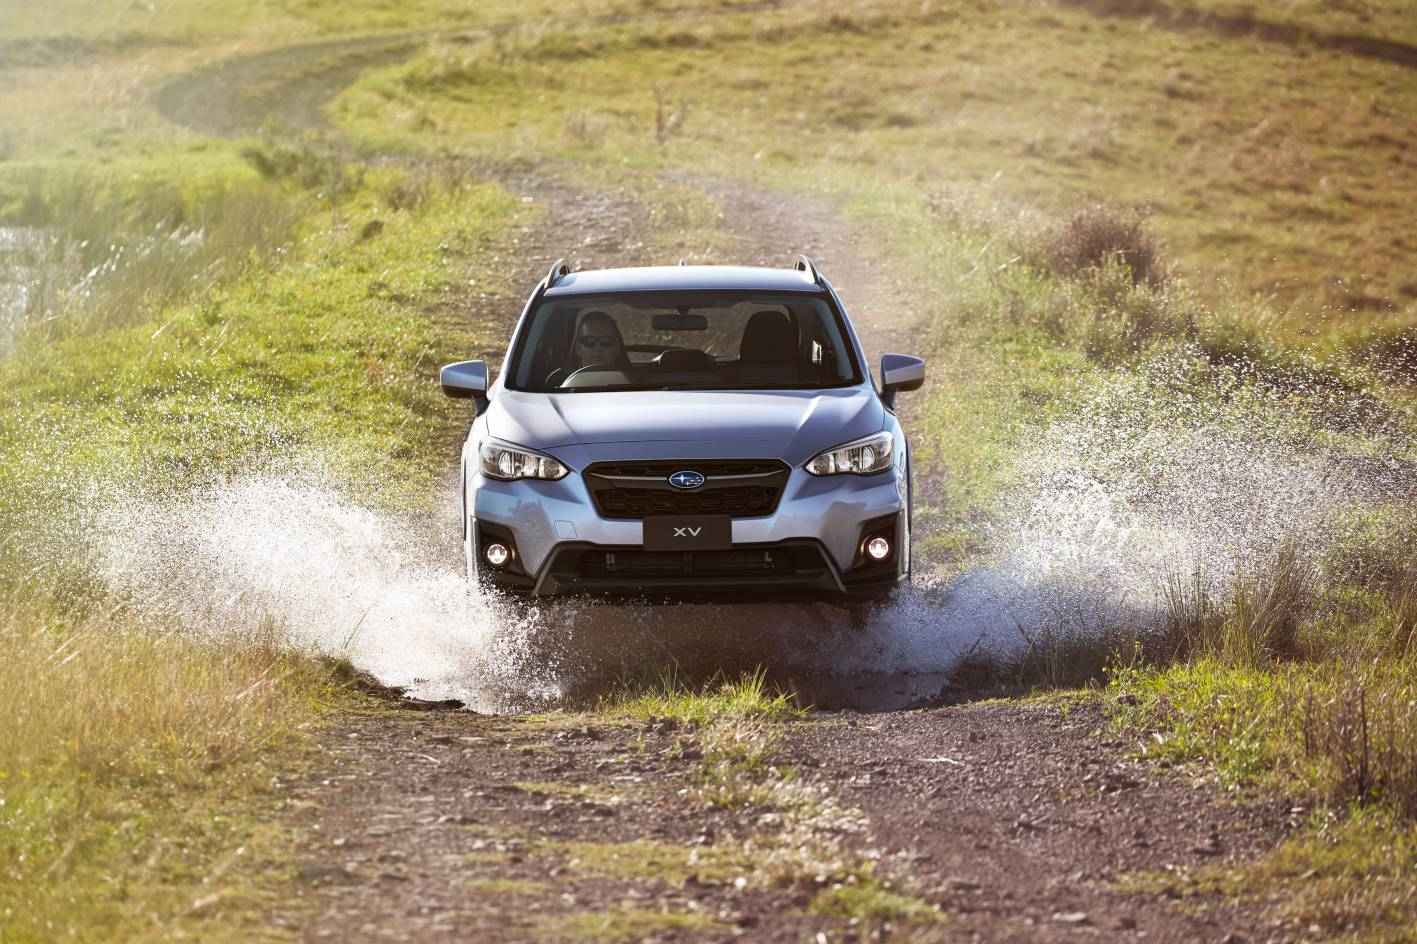 2wd Vs Awd How To Choose The Right Suv Auto Expert By John Hyundai System Cadogan Save Thousands On Your Next New Car